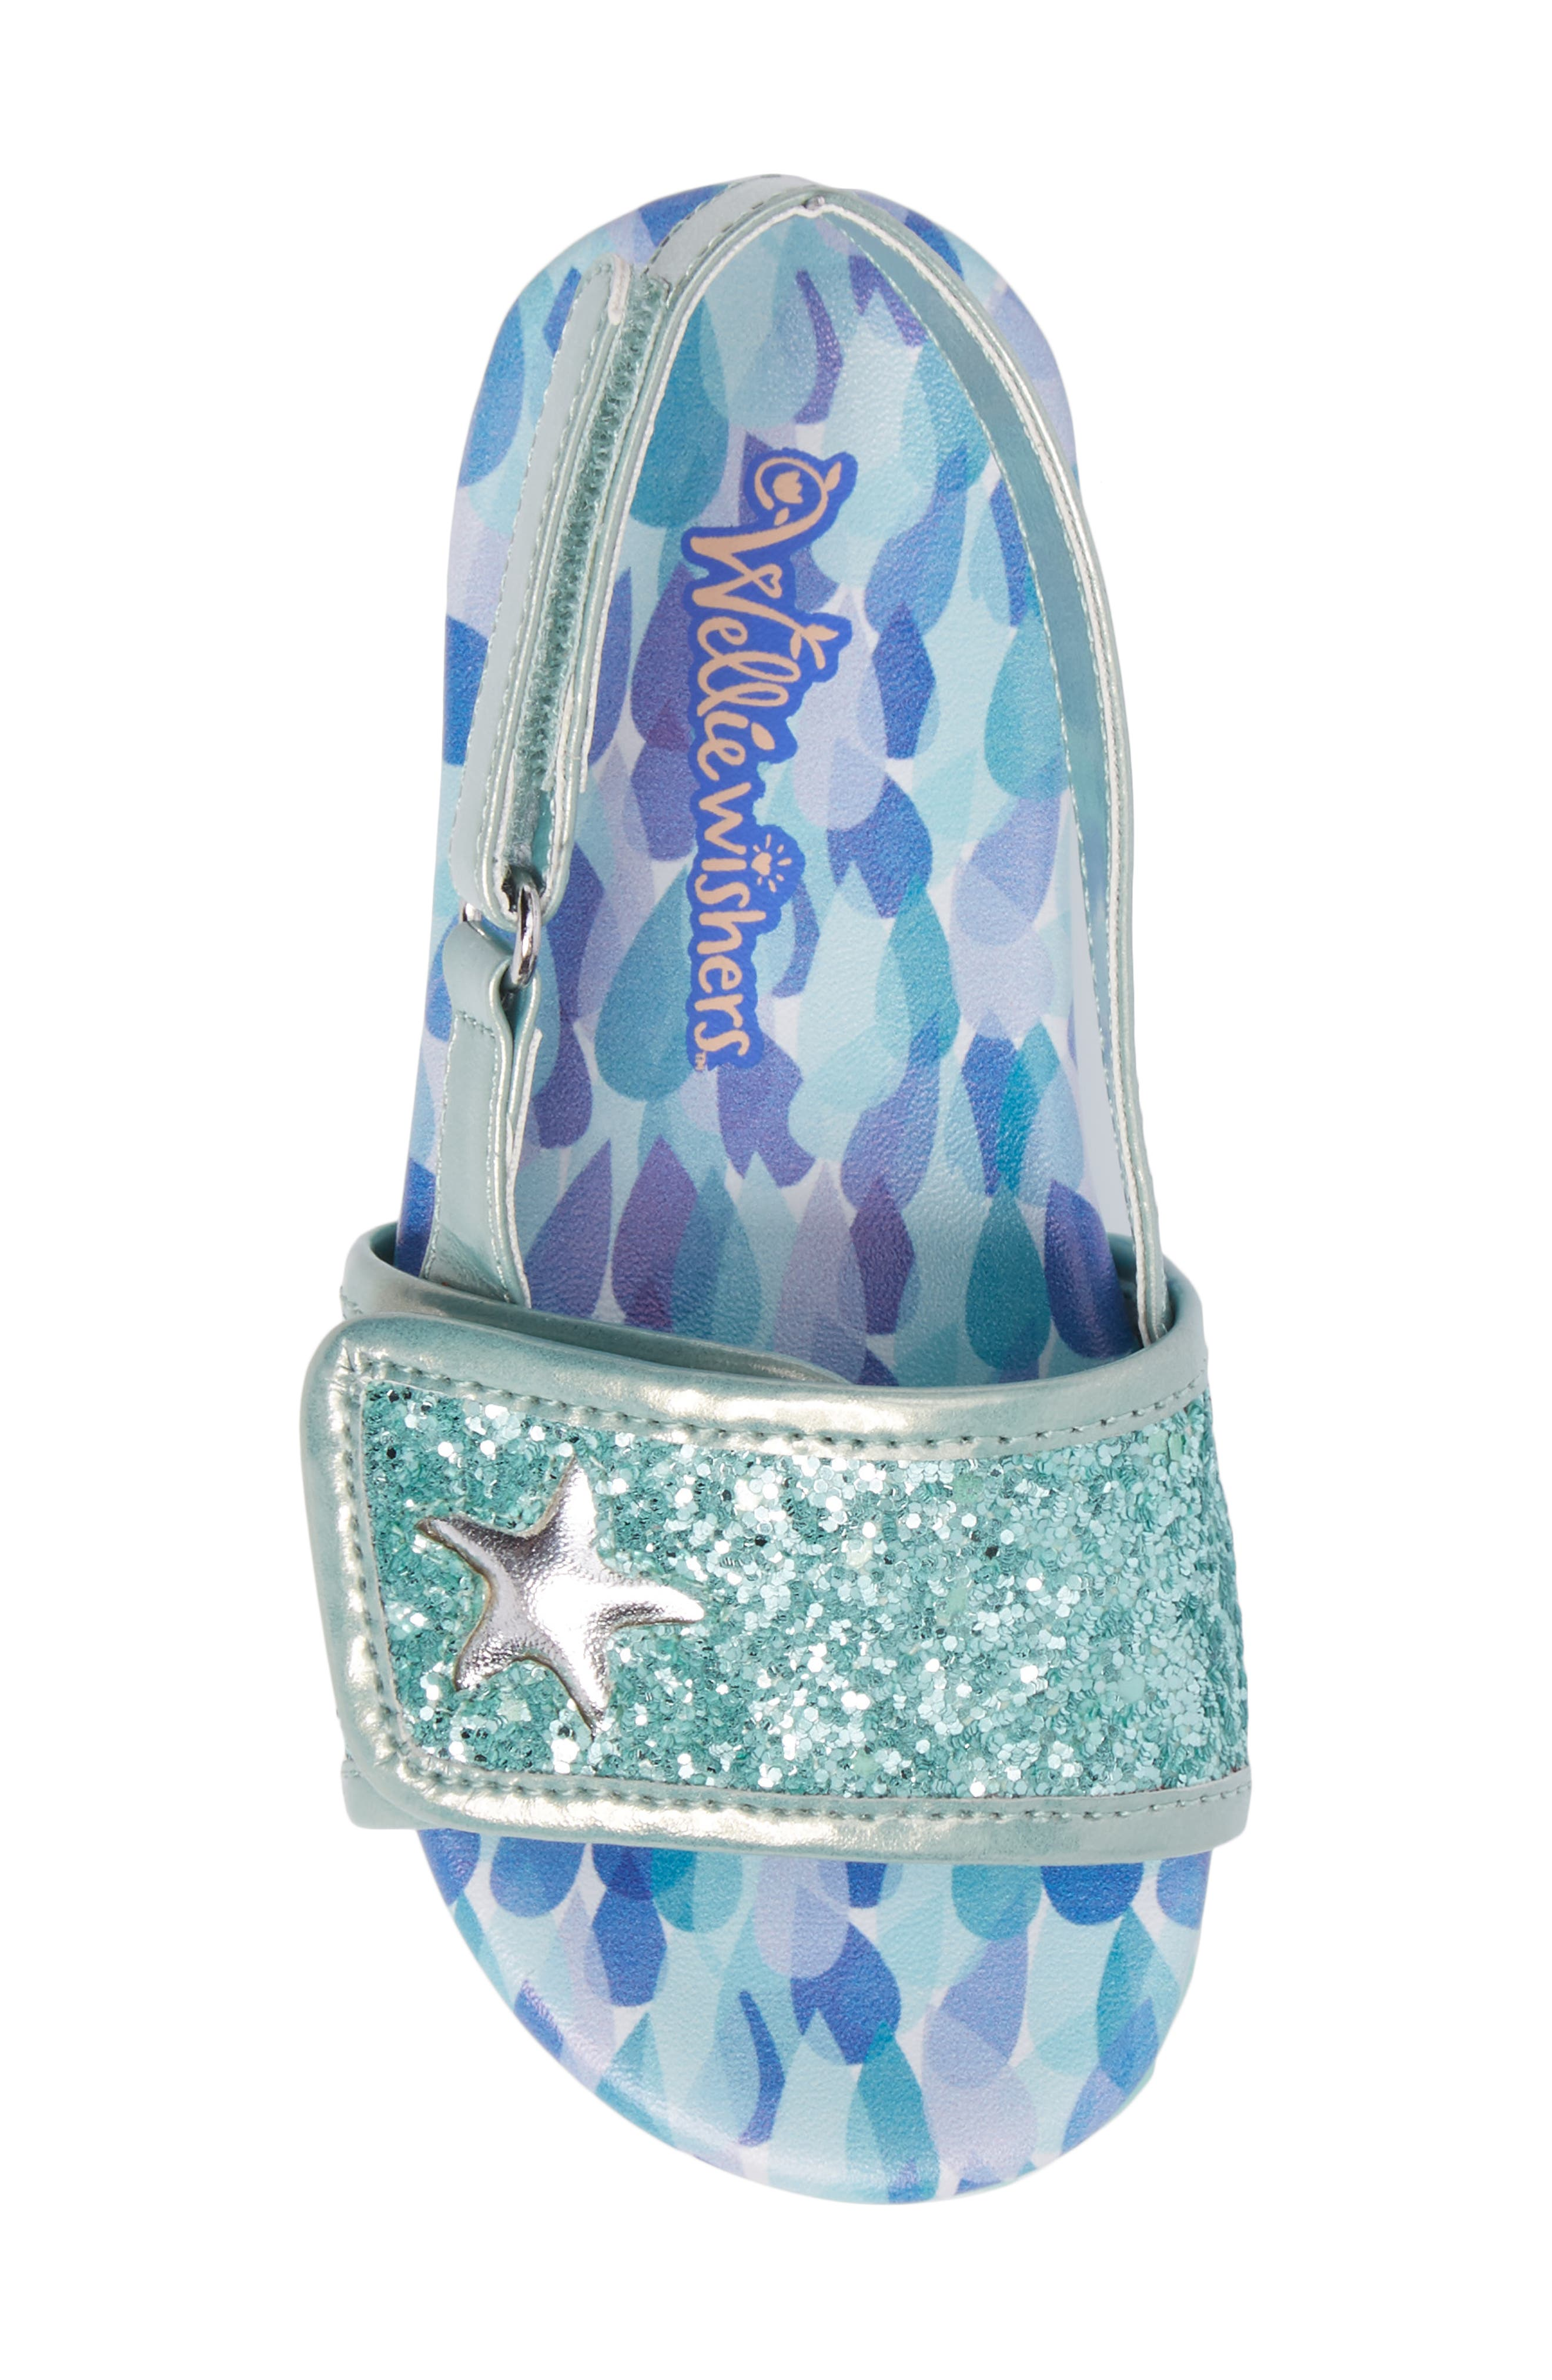 WELLIEWISHERS FROM AMERICAN GIRL,                             Camille Raindrop Strap Sandal,                             Alternate thumbnail 5, color,                             300